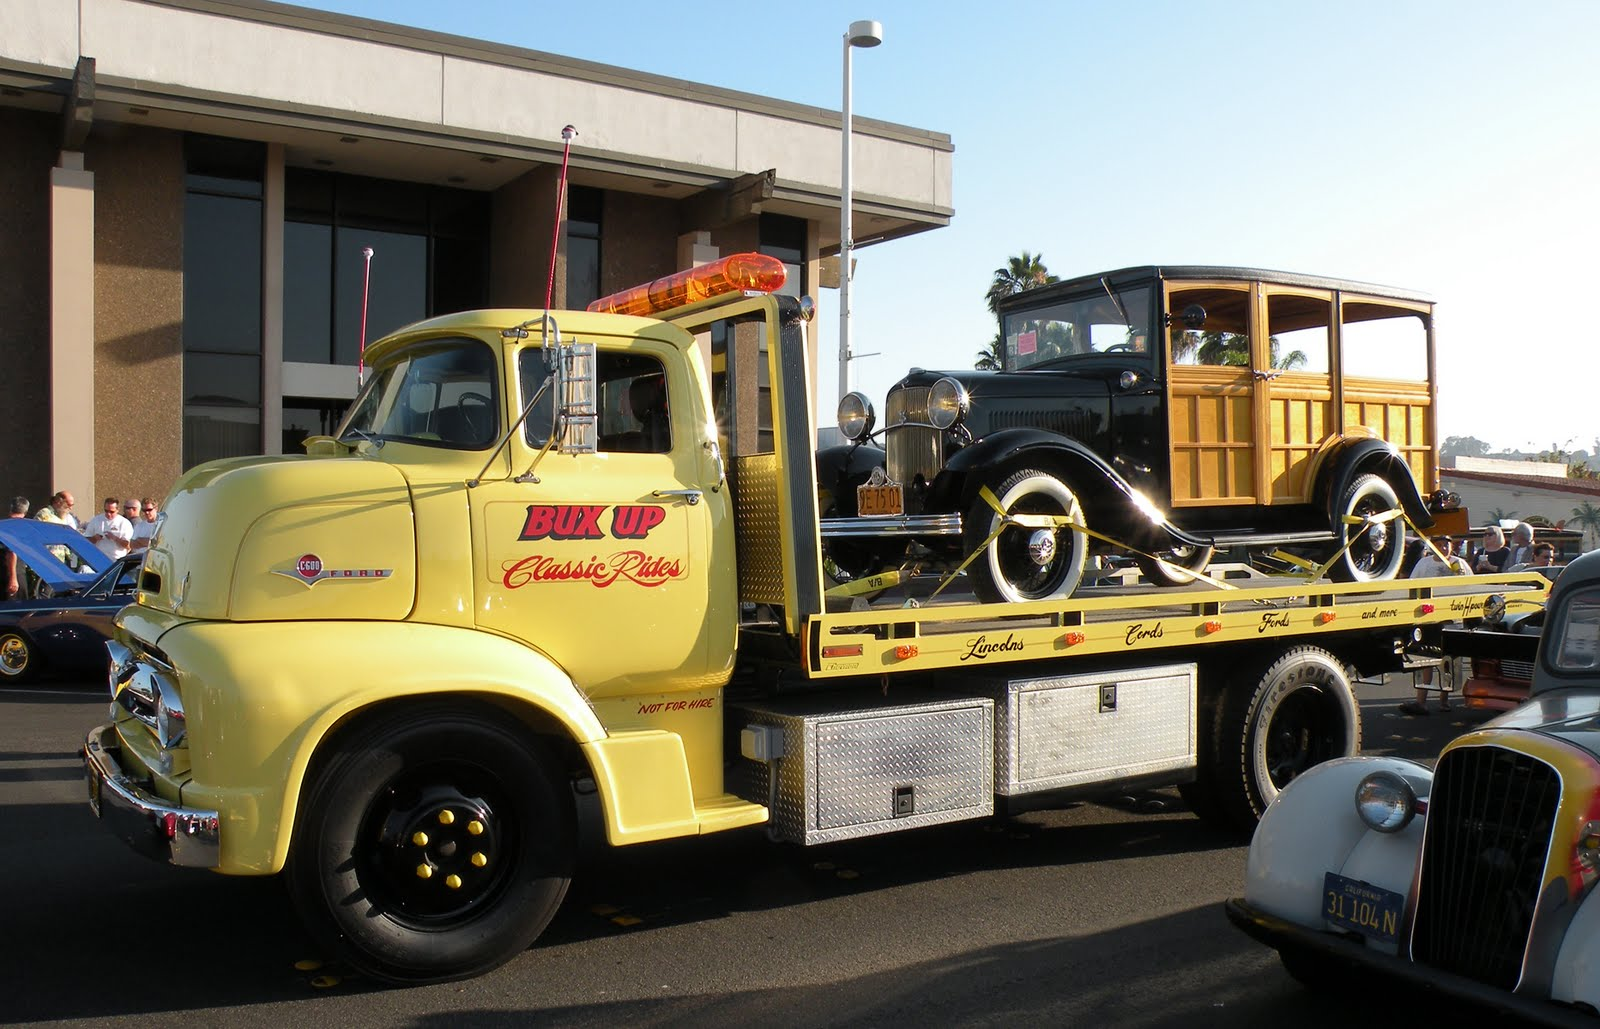 For a similar 1950 s ford hauler transporter but it s a crew cab http justacarguy blogspot com 2010 03 king cab 1950s coe ford hauler from html